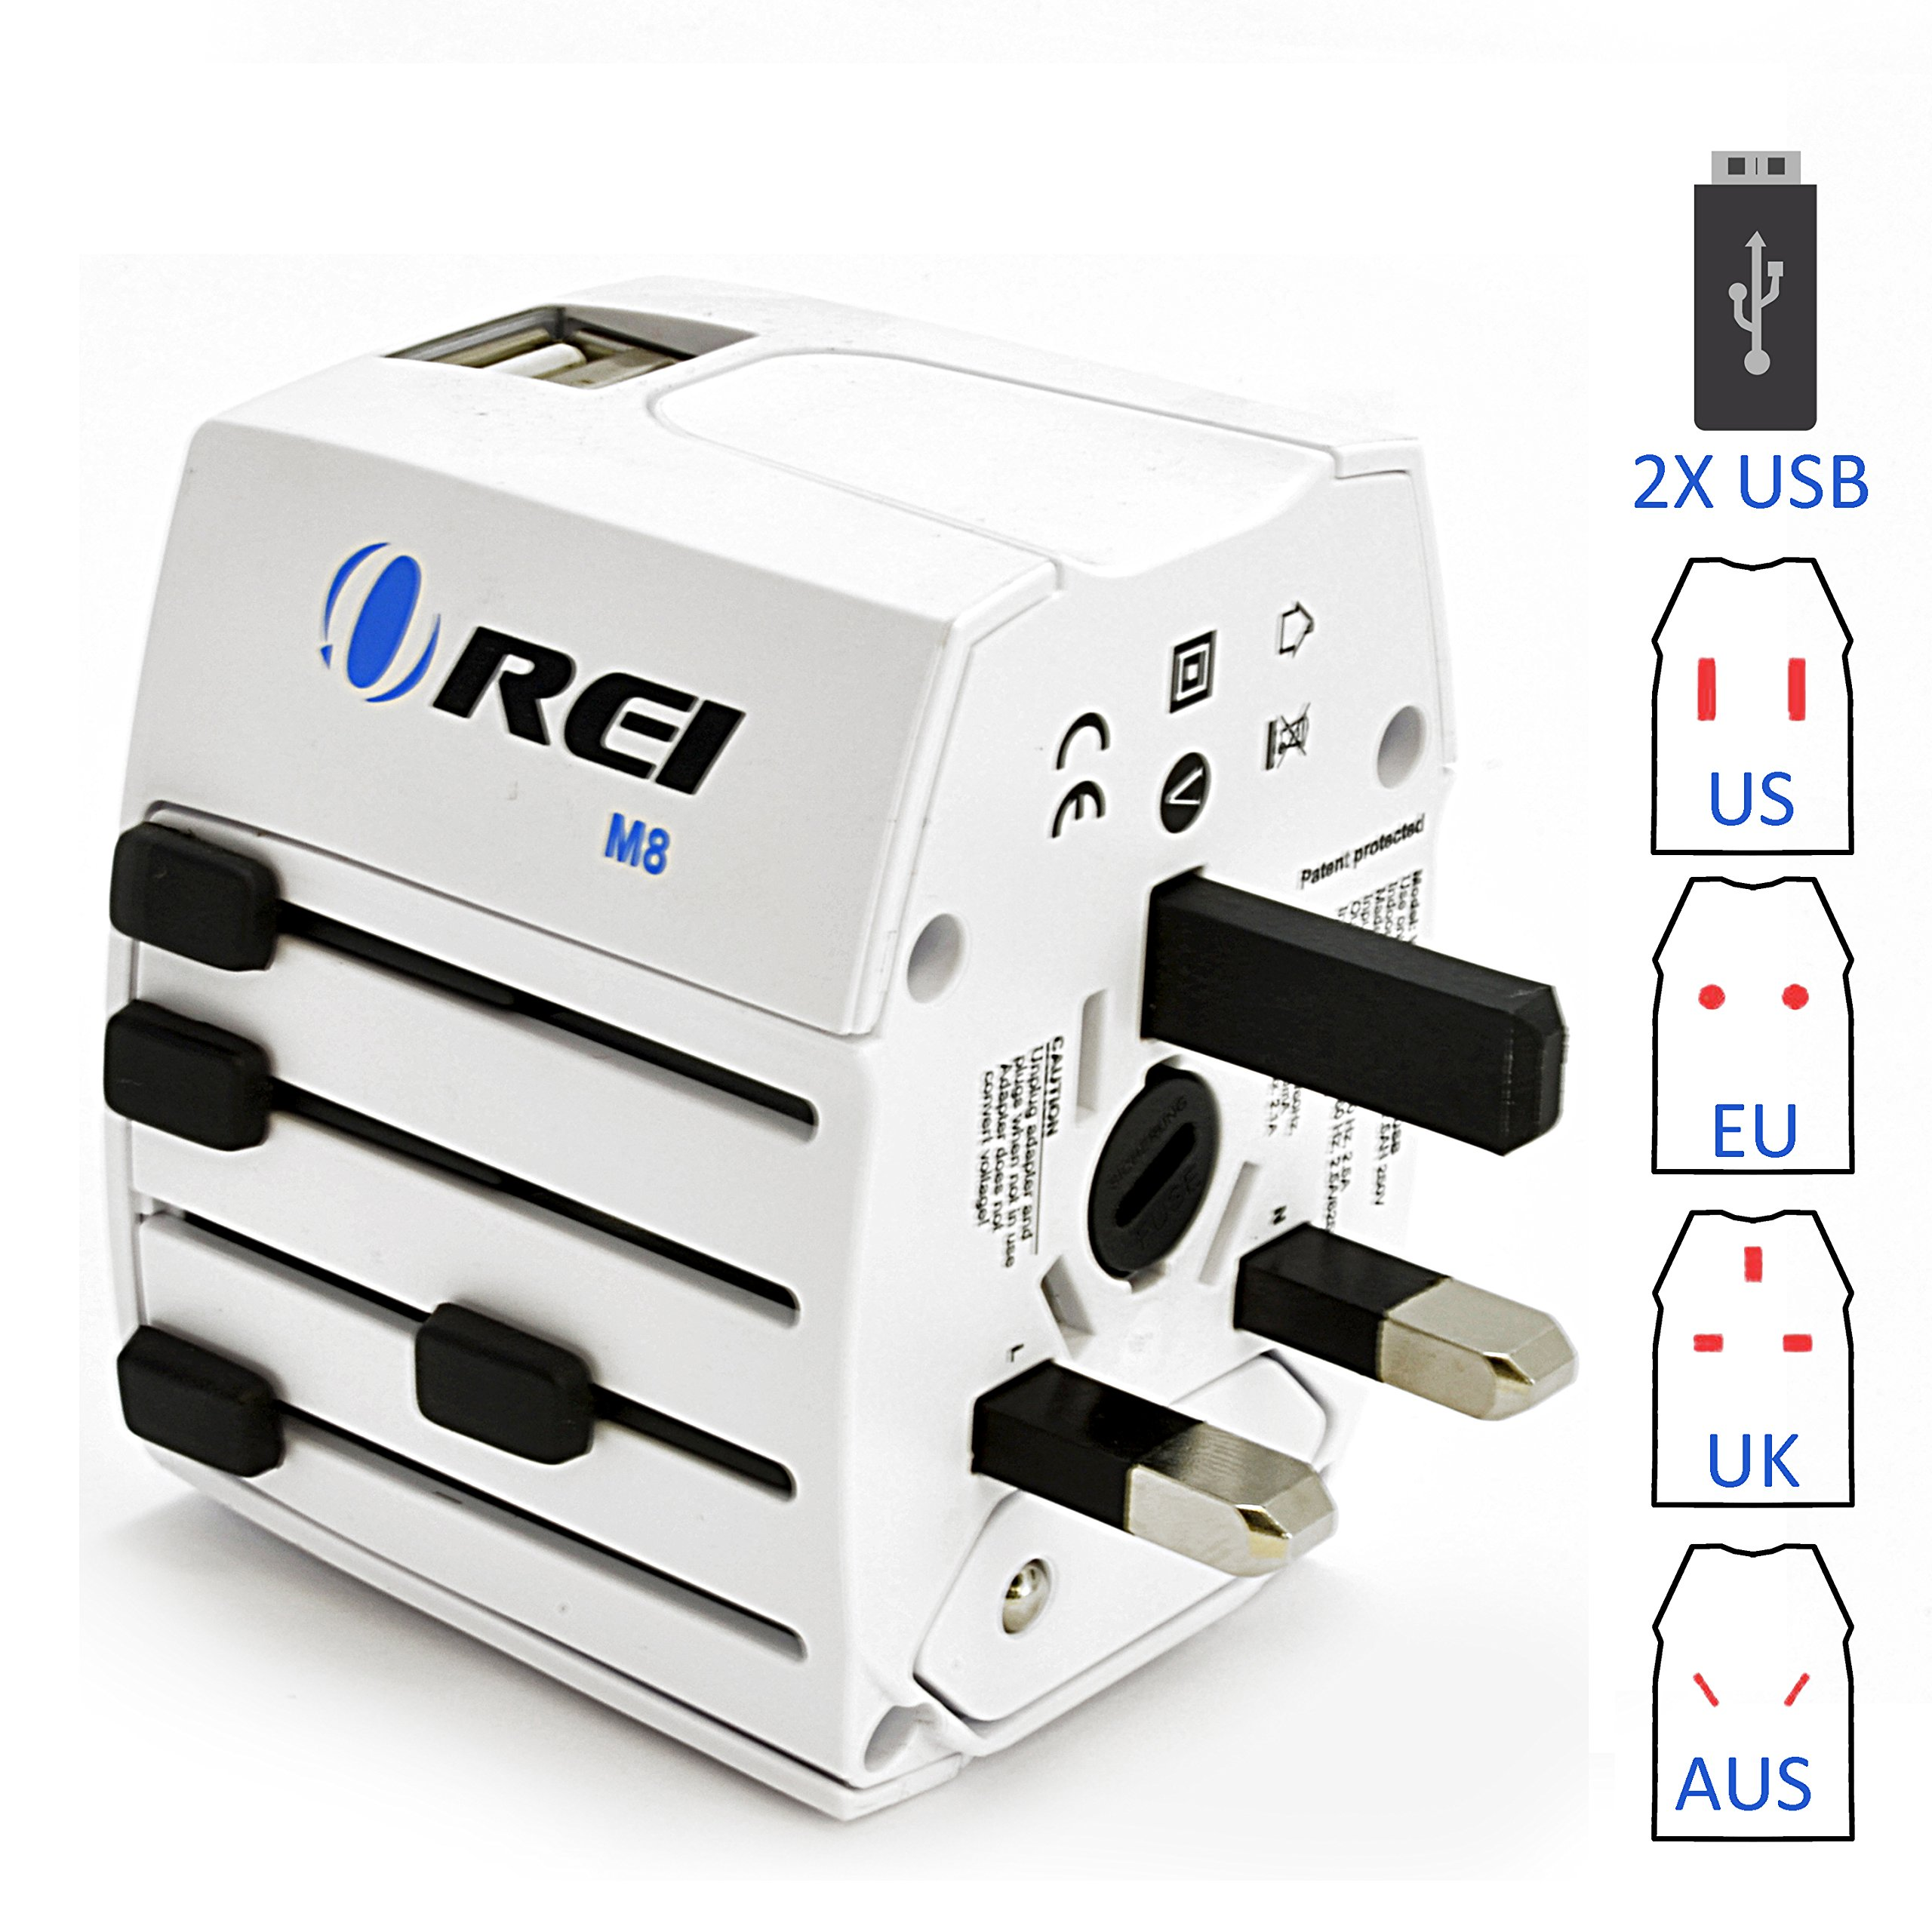 Travel Adapter, OREI Worldwide All in One Universal Power Converters Wall AC Power Plug Adapter Power Plug Wall Charger with Dual USB Charging Ports for USA EU UK AUS Cell phone Laptop by Orei (Image #1)